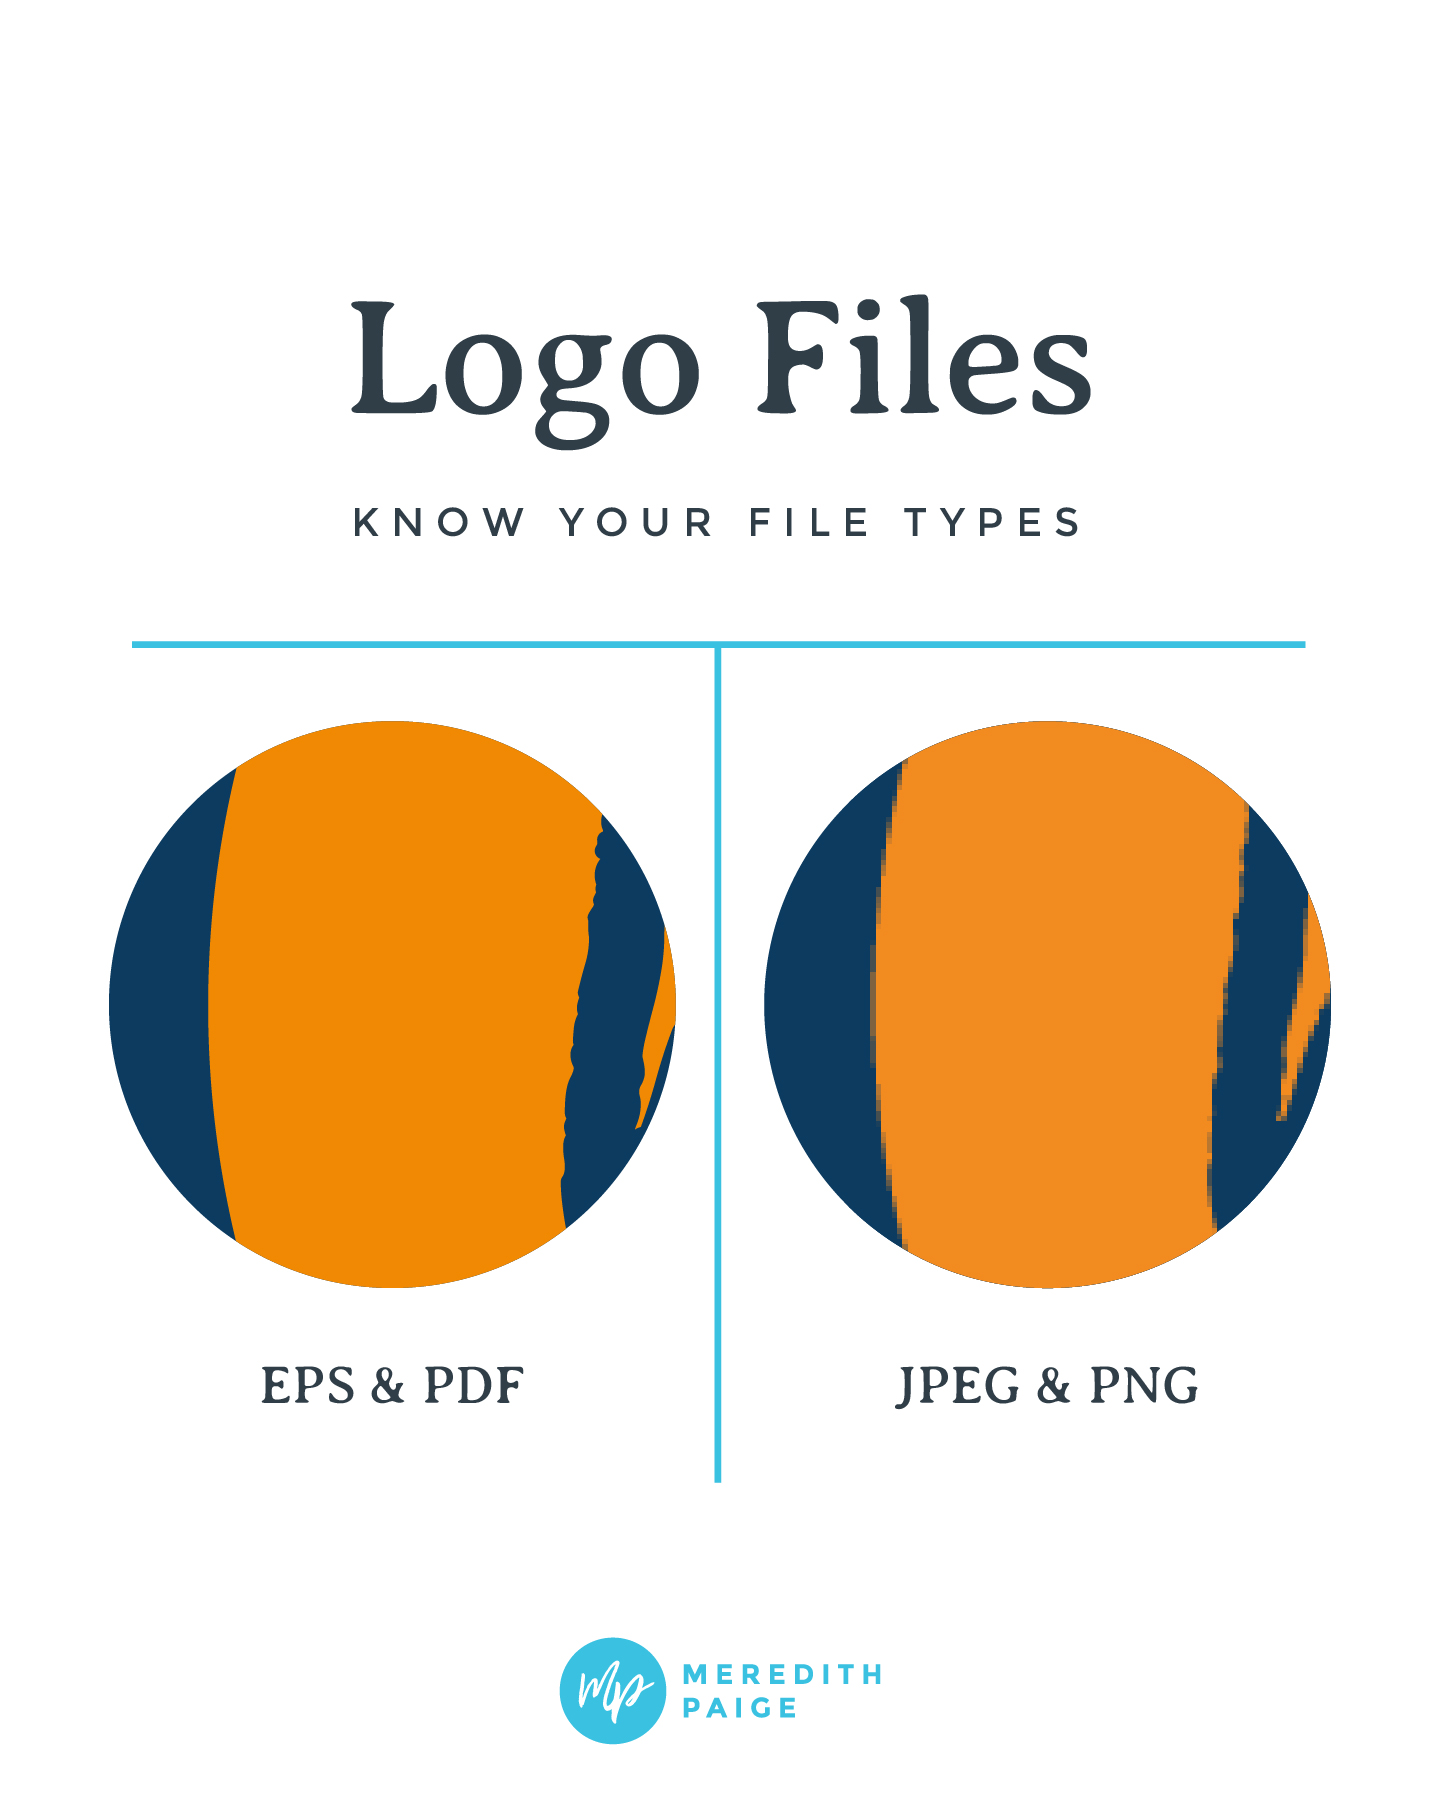 See the difference between key logo file types | Meredith Paige Small Business Marketing